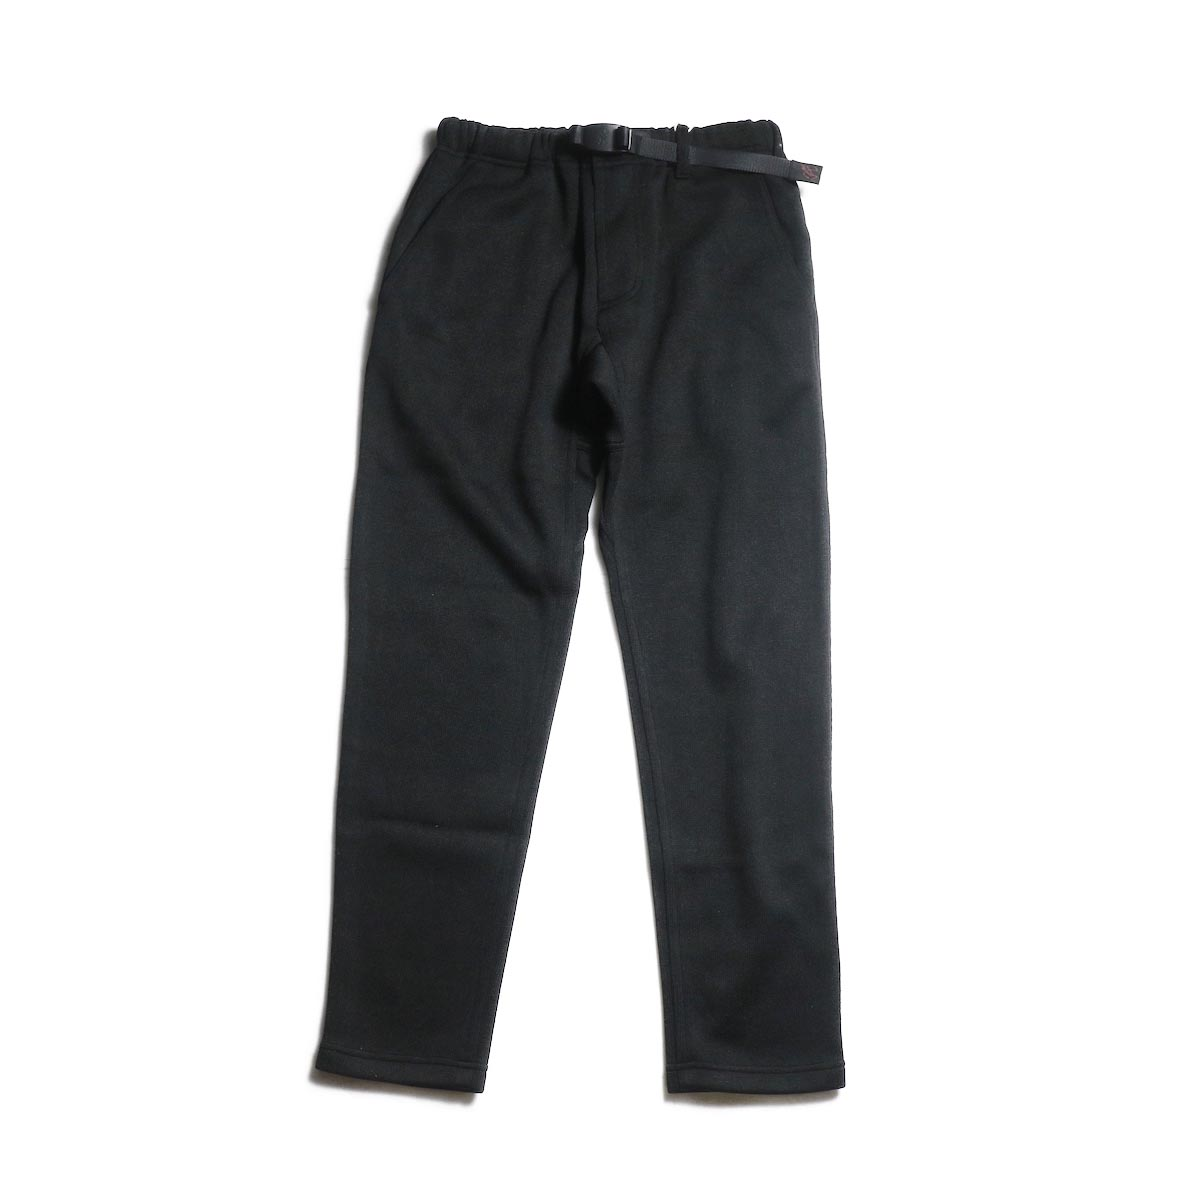 GRAMICCI / BONDING KNIT FLEECE SLIM PANTS (Black × Black)